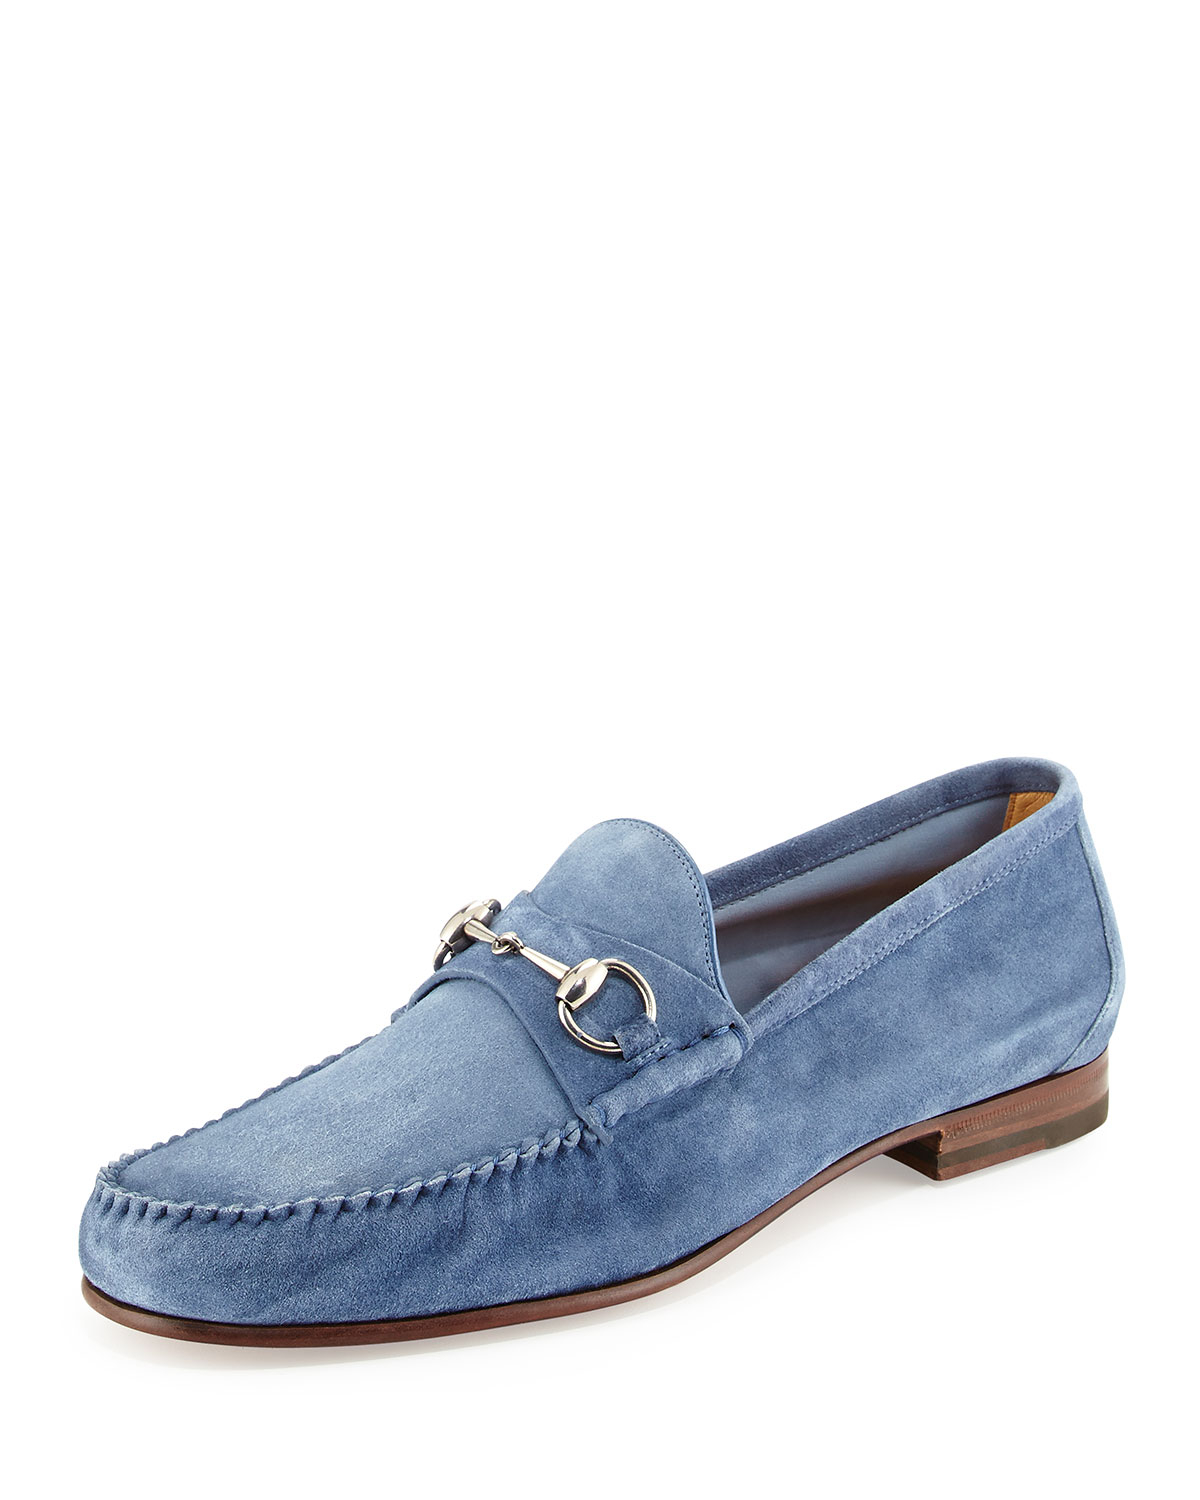 90f2c9713a3 Lyst - Gucci Unlined Suede Horsebit Loafer in Blue for Men